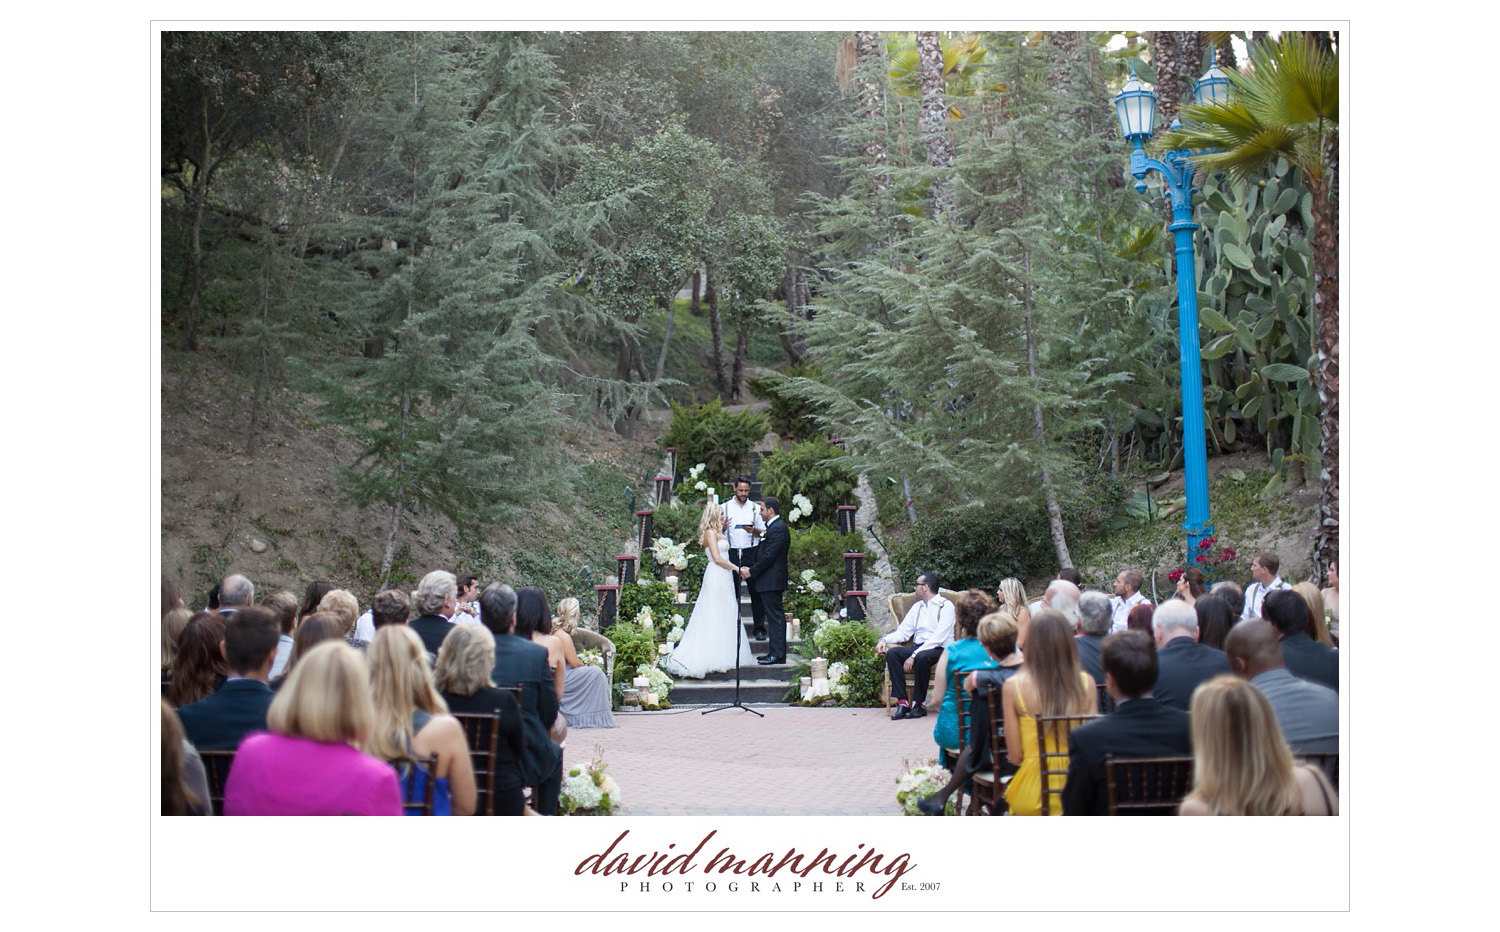 The-Montage-Rancho-Las-Lomas-Wedding-David-Manning-Photographers130921-0022.jpg